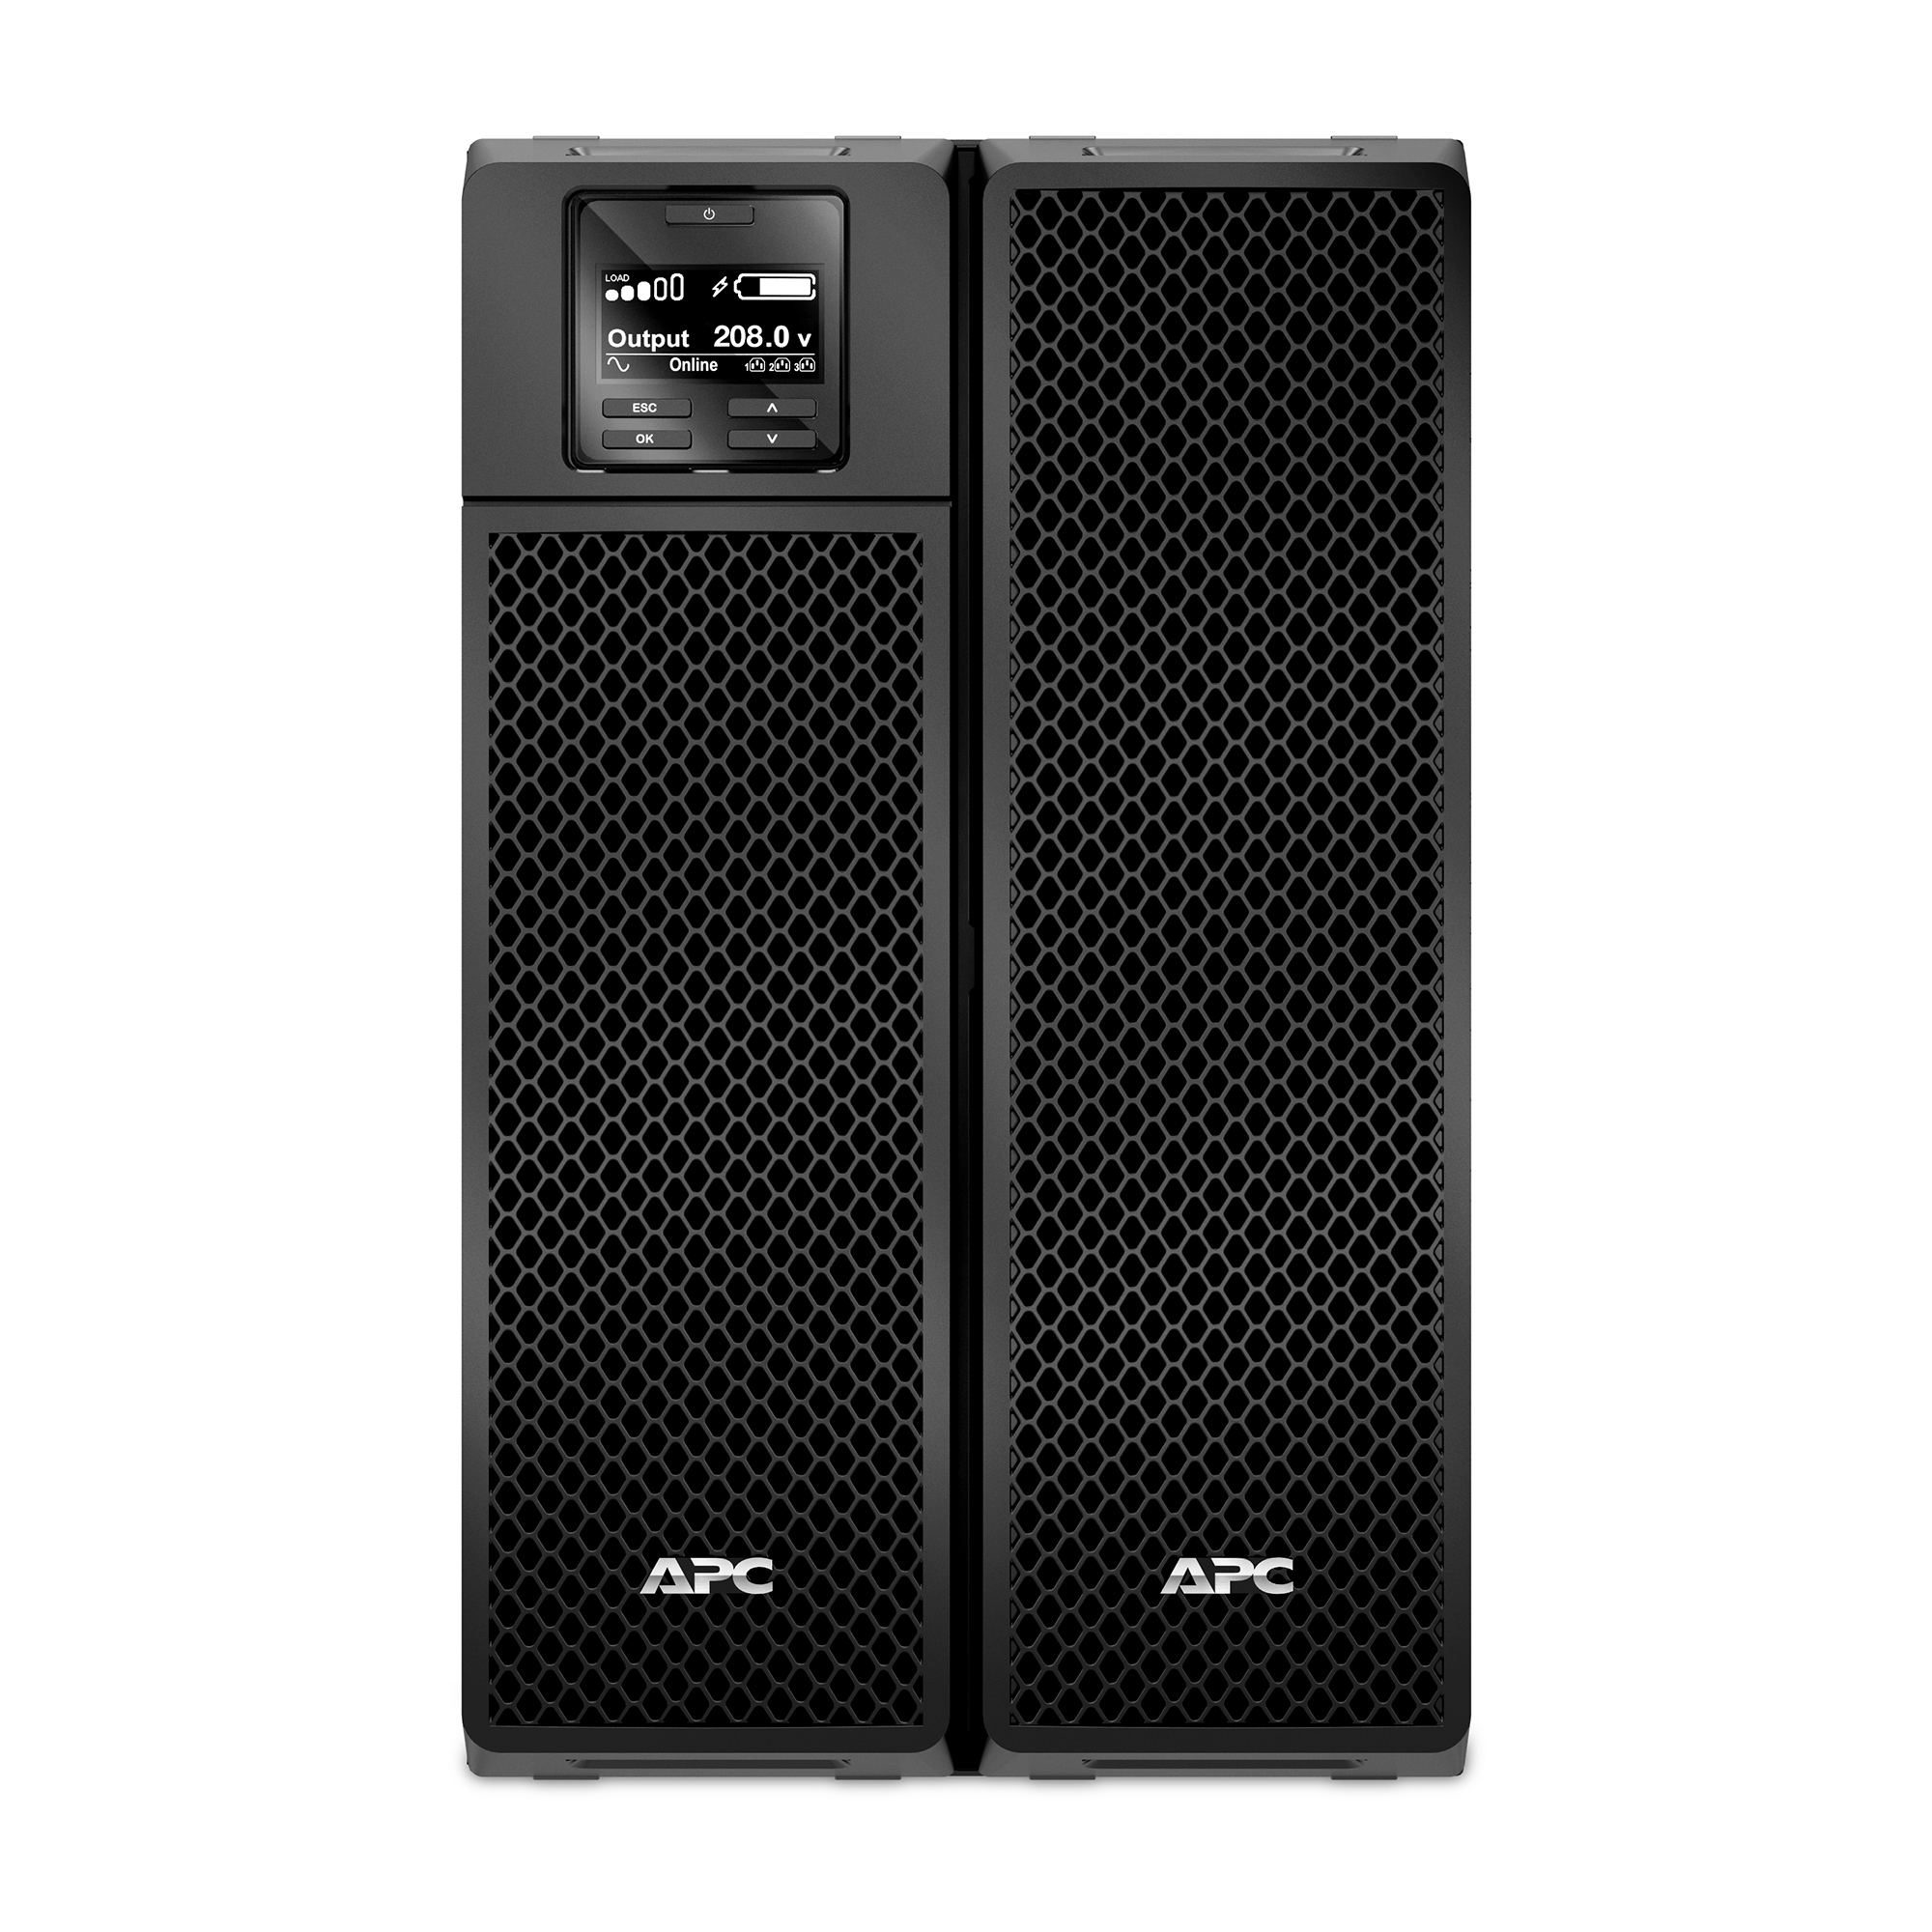 Nobreak inteligente SRT da APC, 8000 VA e 208 V